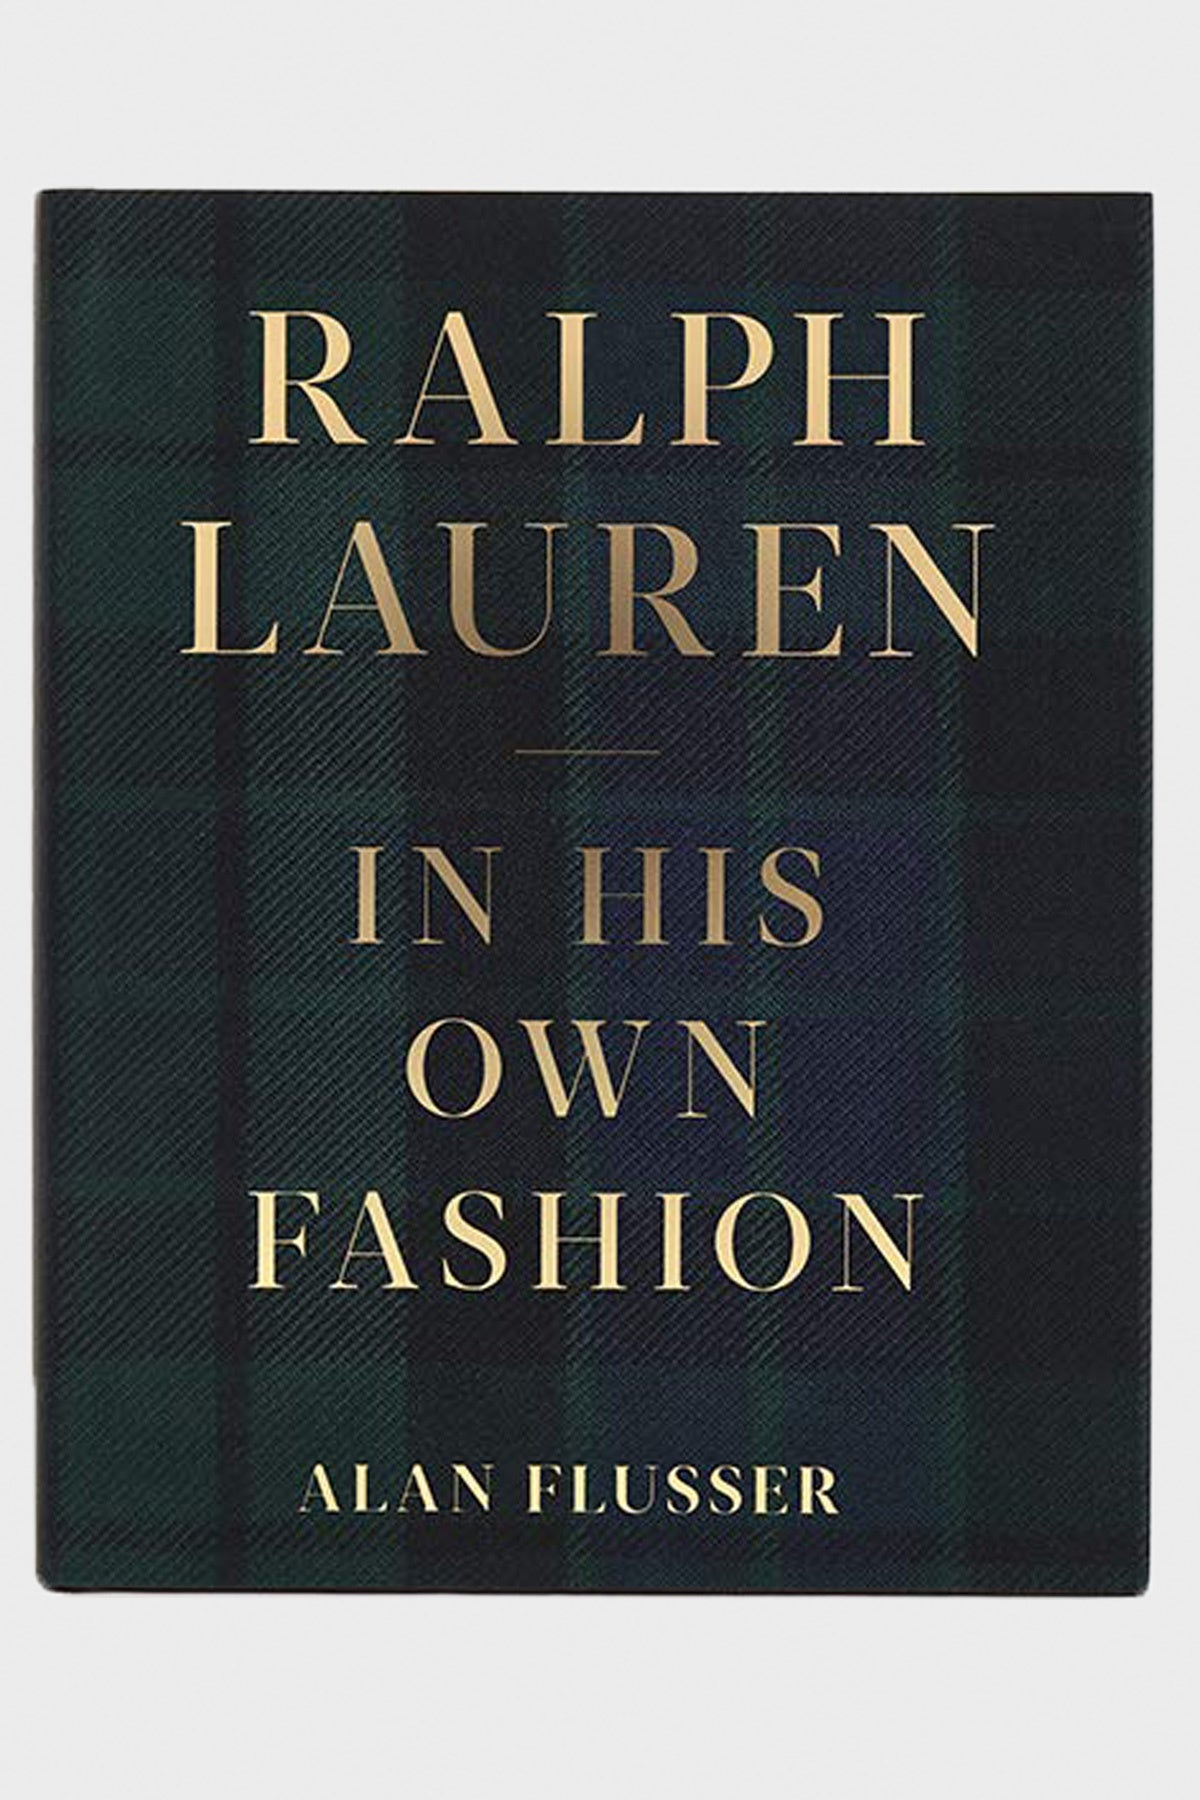 Hachette Books - Ralph Lauren: In His Own Fashion - Canoe Club